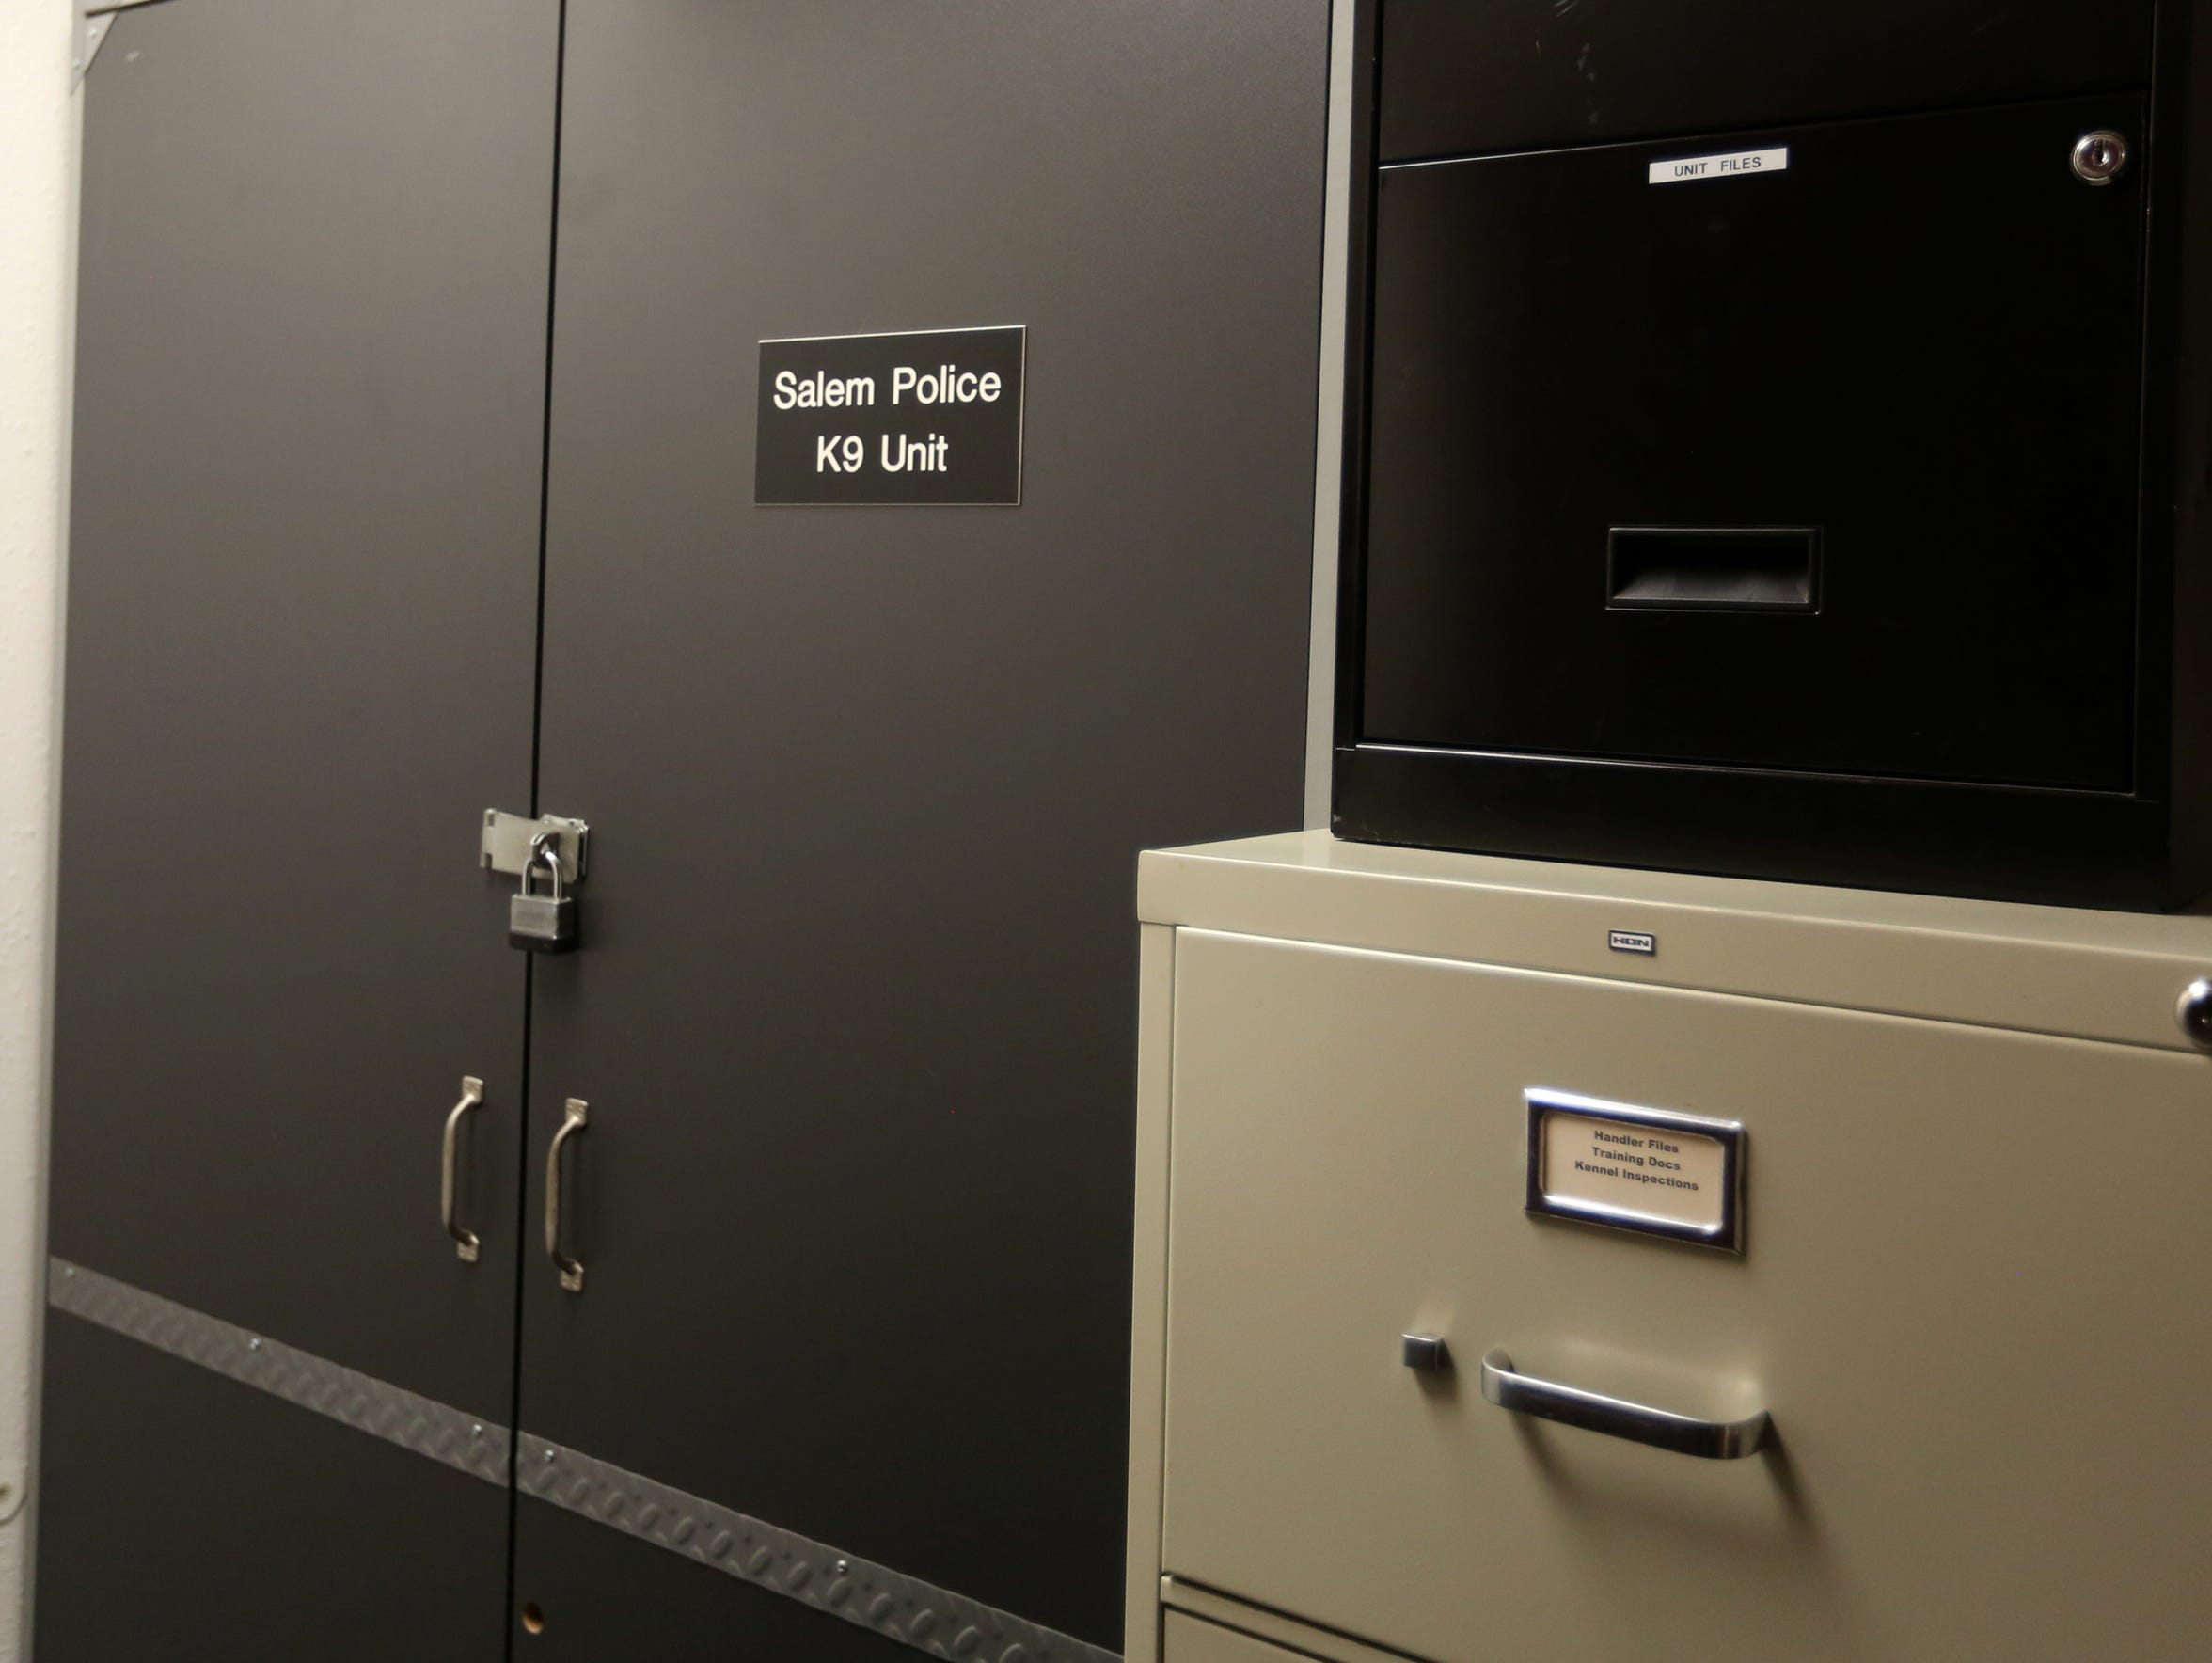 A K9 unit storage area at the Salem Police Department